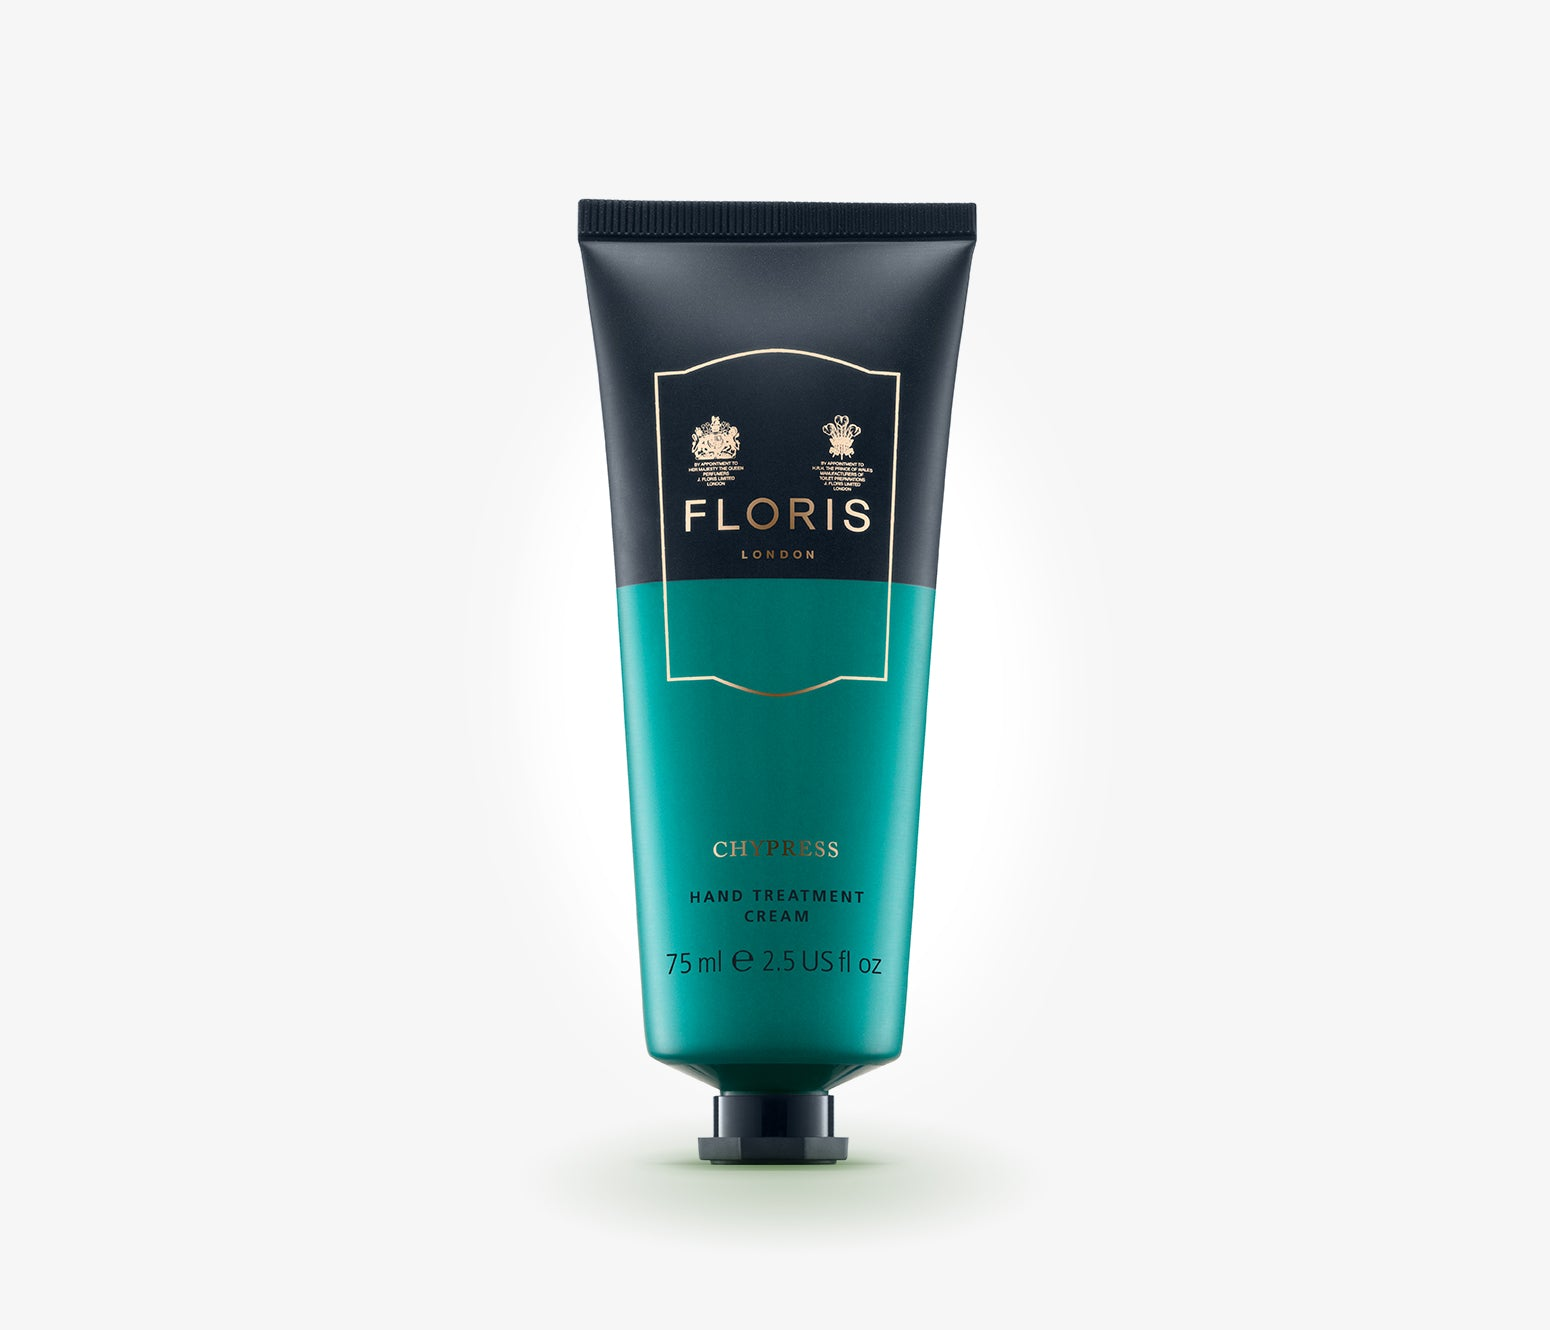 Floris - Chypress Hand Cream - 75ml - CCH001 - product image - Hand Cream - Les Senteurs